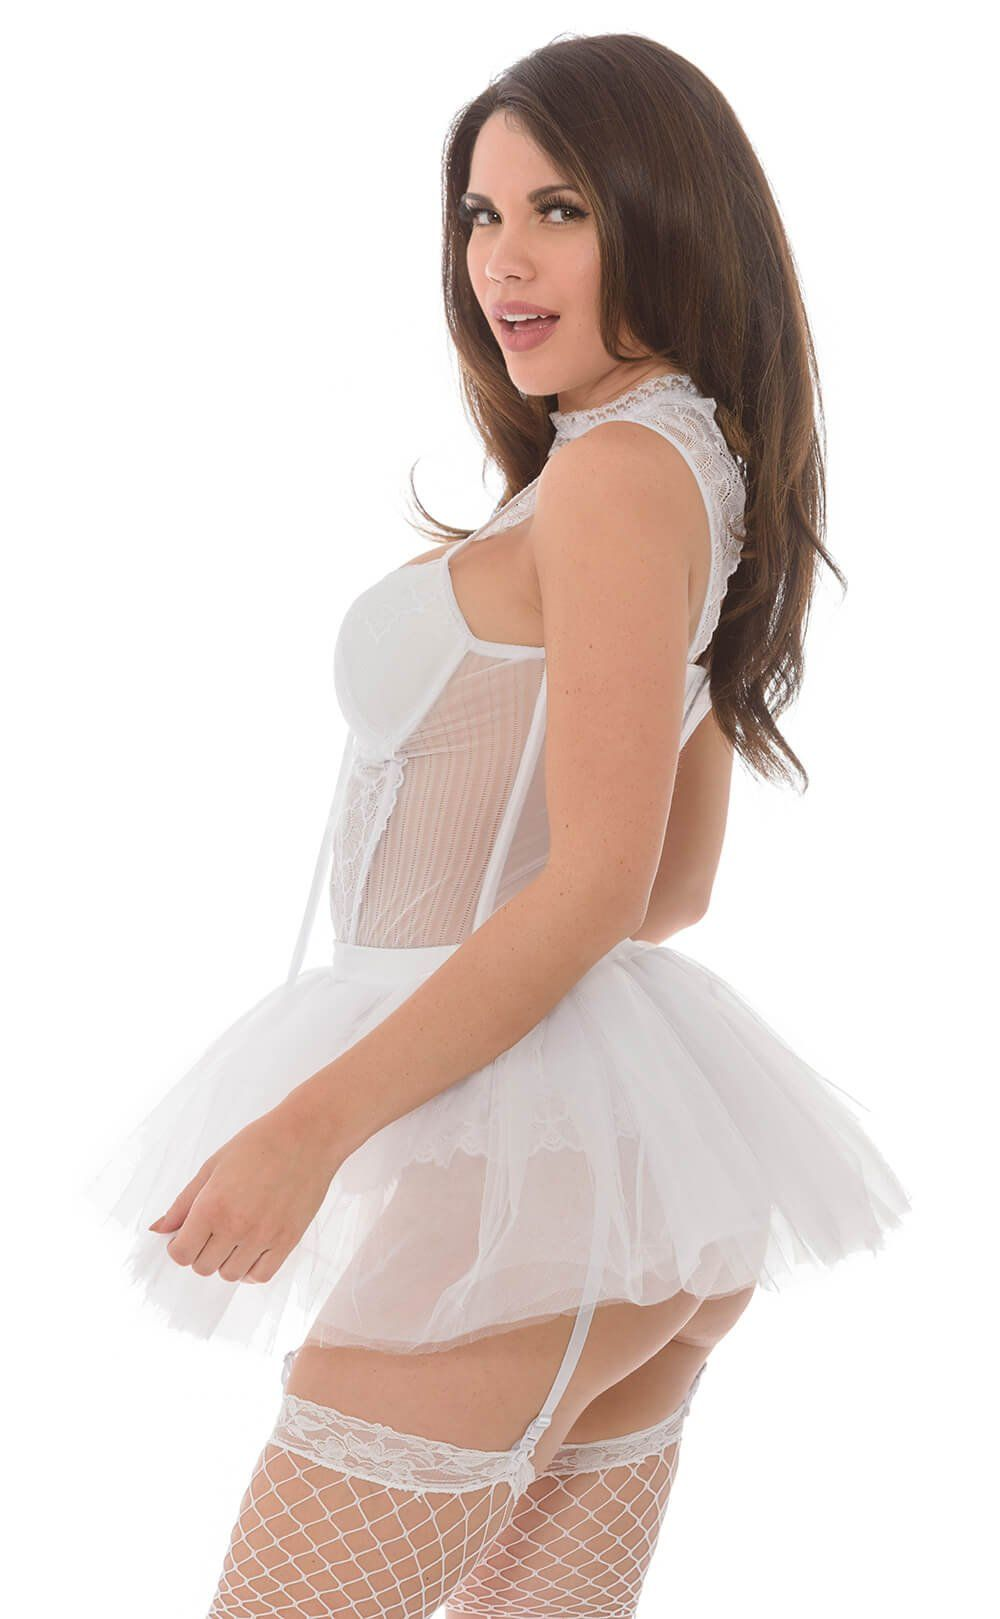 218b91e882f56 Velvet Kitten Sweet Sensations Set Bridal Lingerie Bustier Lingerie Dress  Medium * Find out more about the great product at the image link.